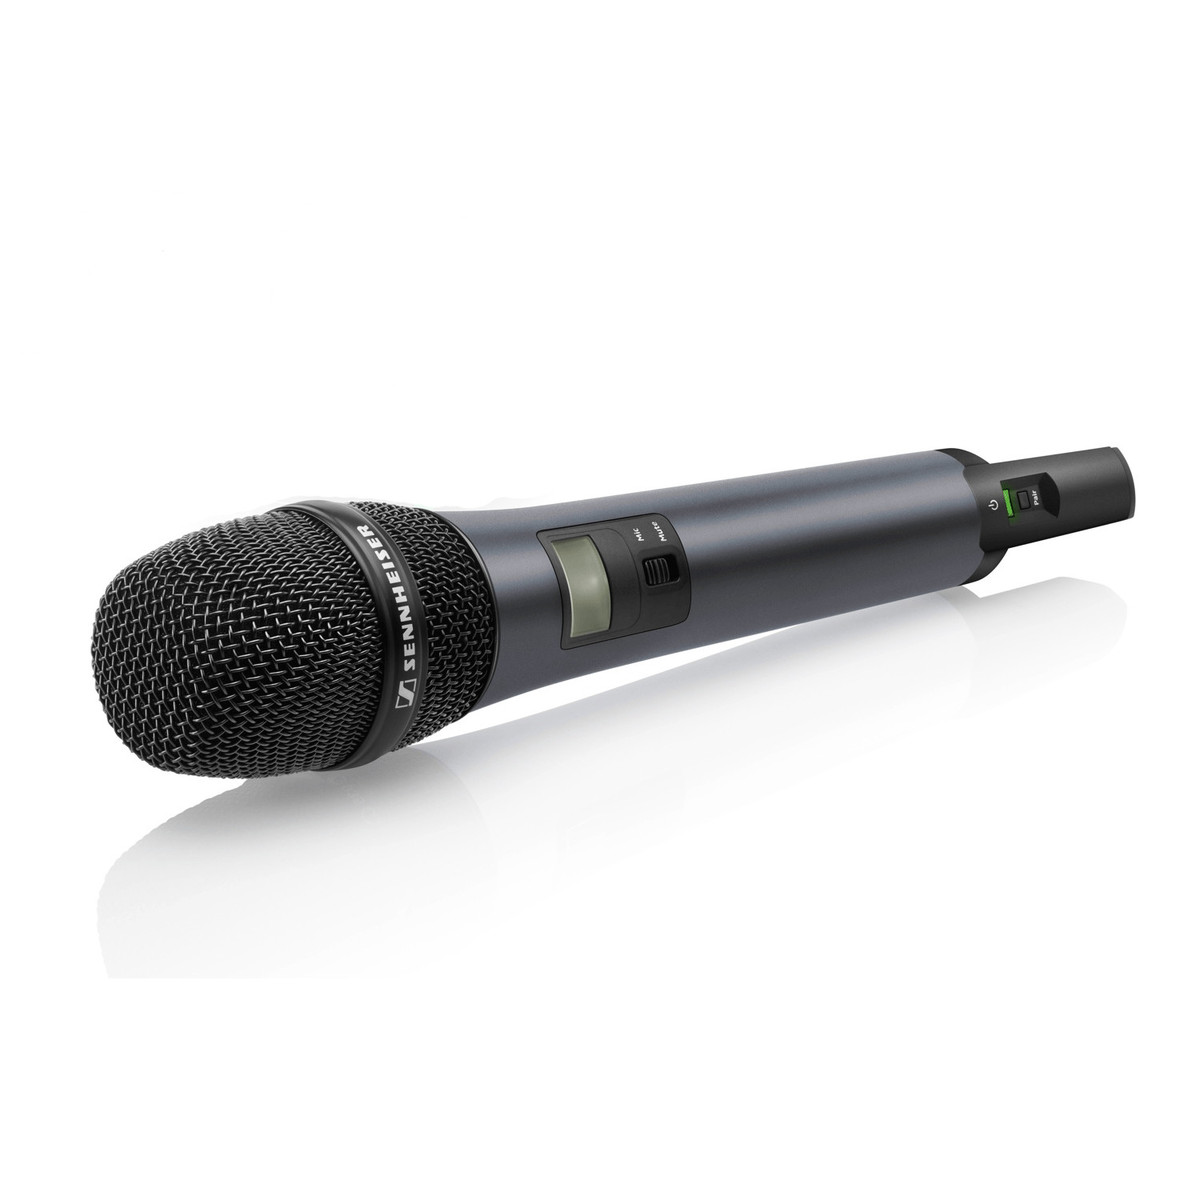 sennheiser ew d1 835s digital wireless handheld microphone system b stock at gear4music. Black Bedroom Furniture Sets. Home Design Ideas